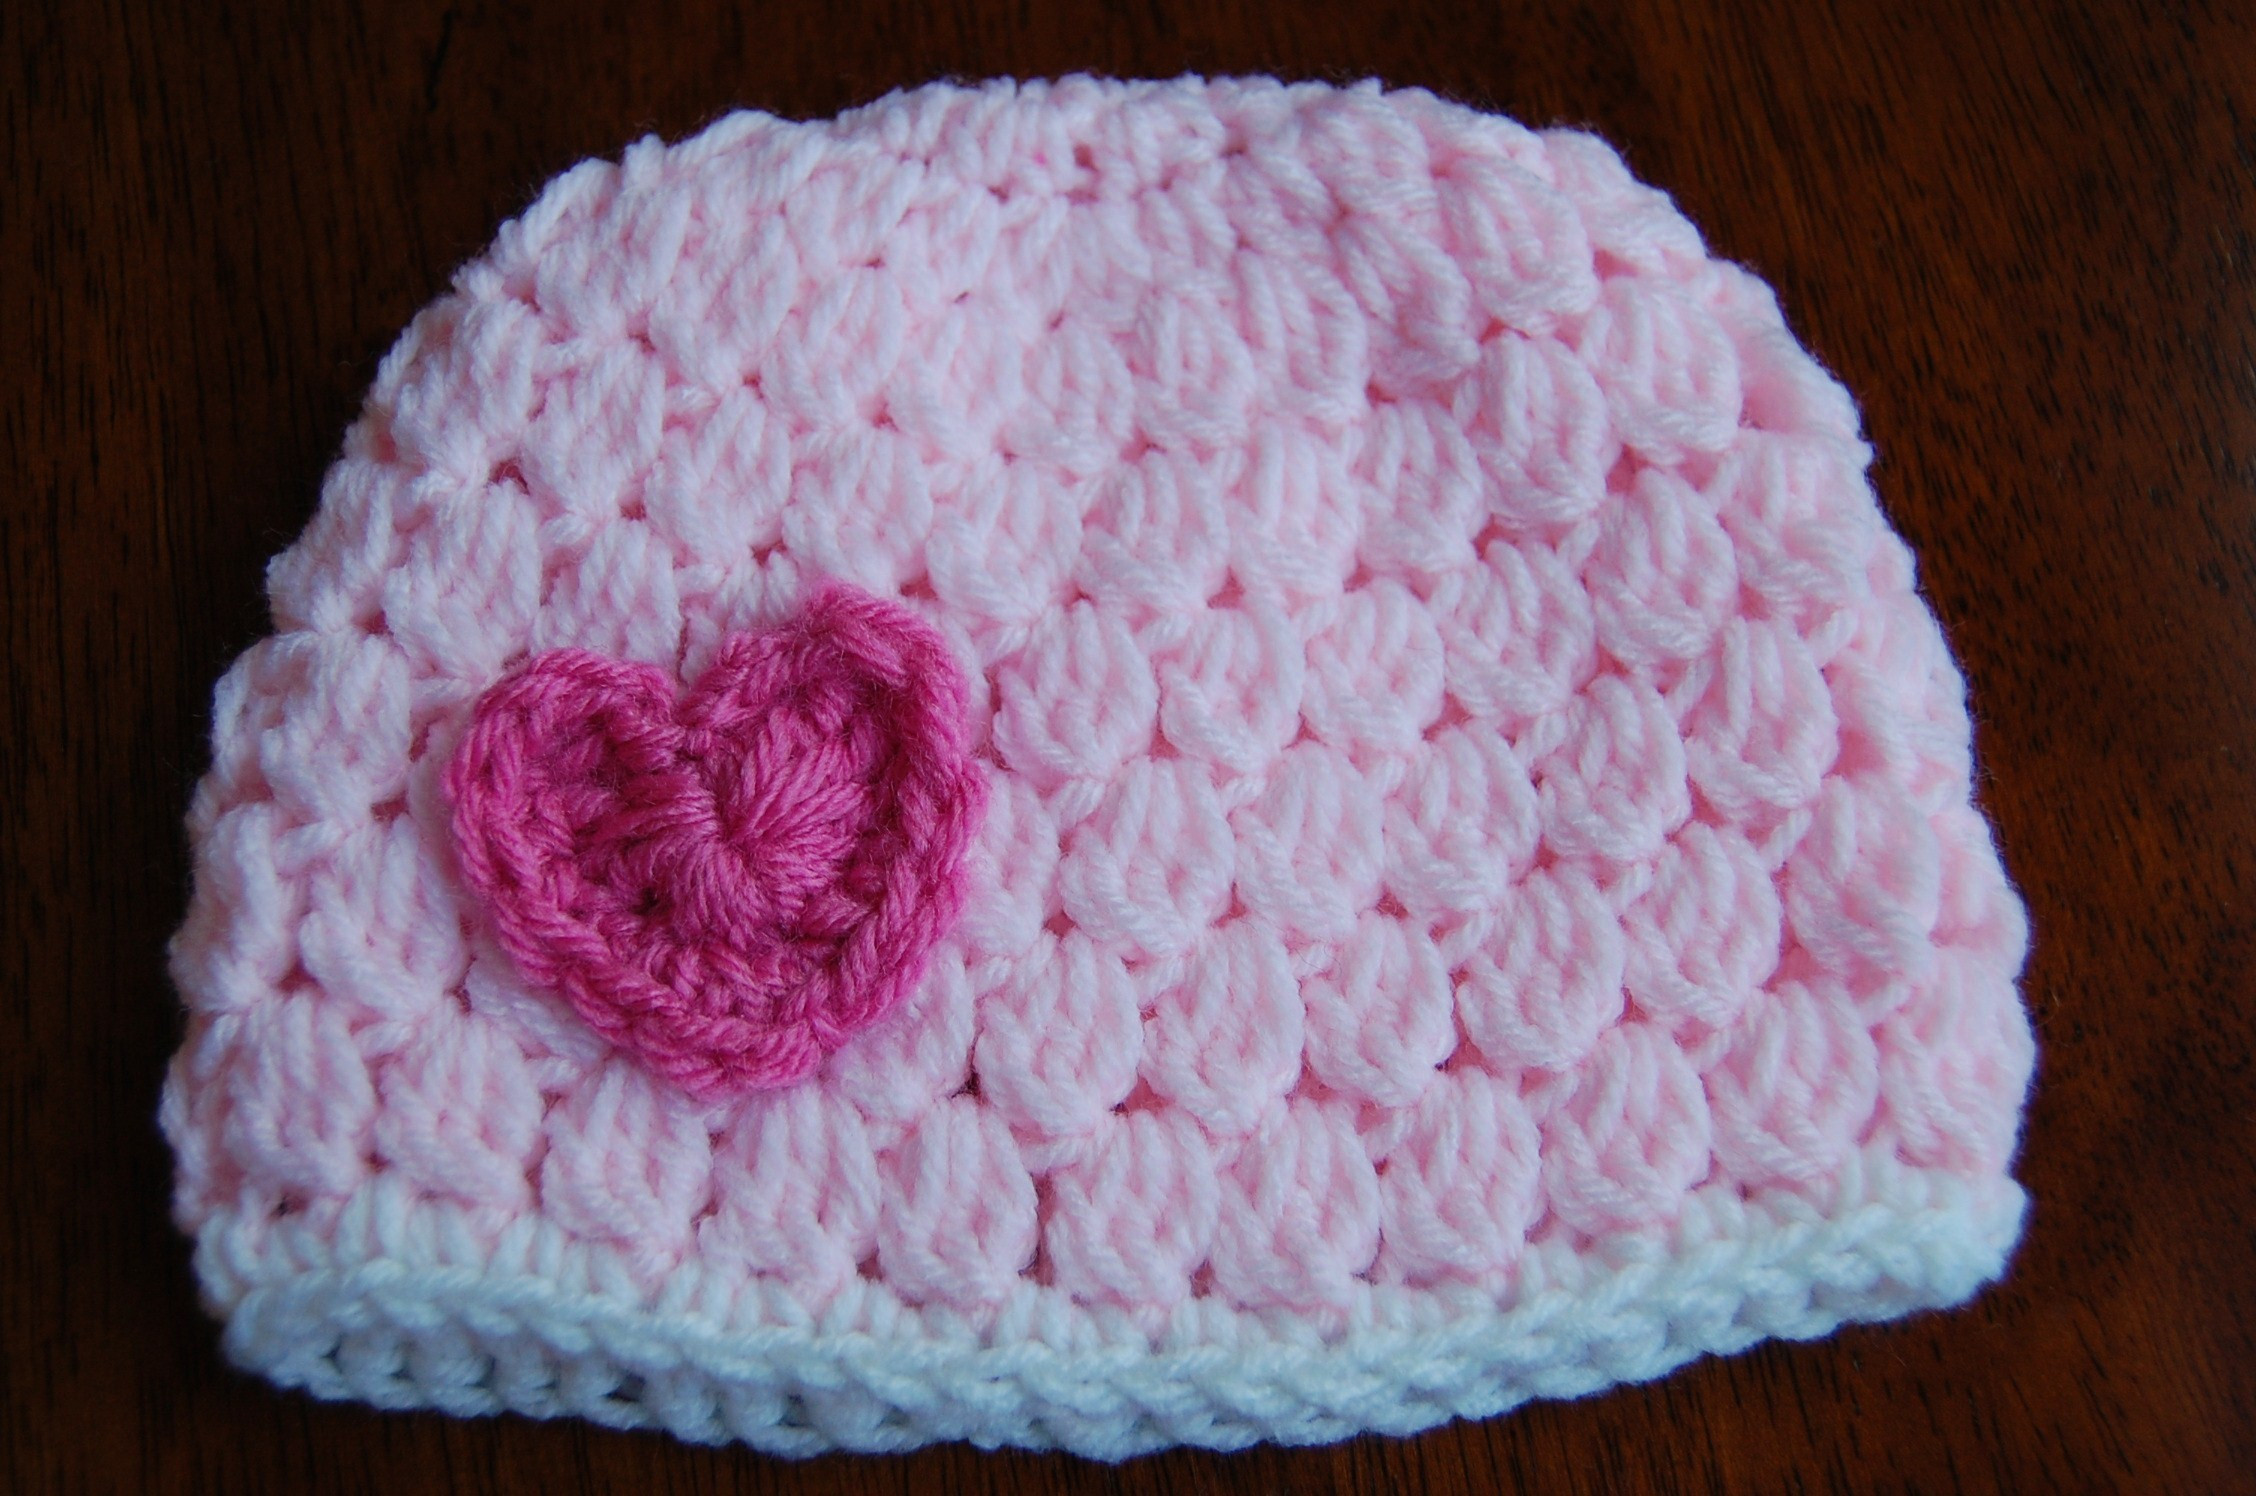 Newborn Baby Hat Crochet Pattern Awesome Free Girl S Crochet Hat Pattern with Heart Of Superb 44 Pictures Newborn Baby Hat Crochet Pattern